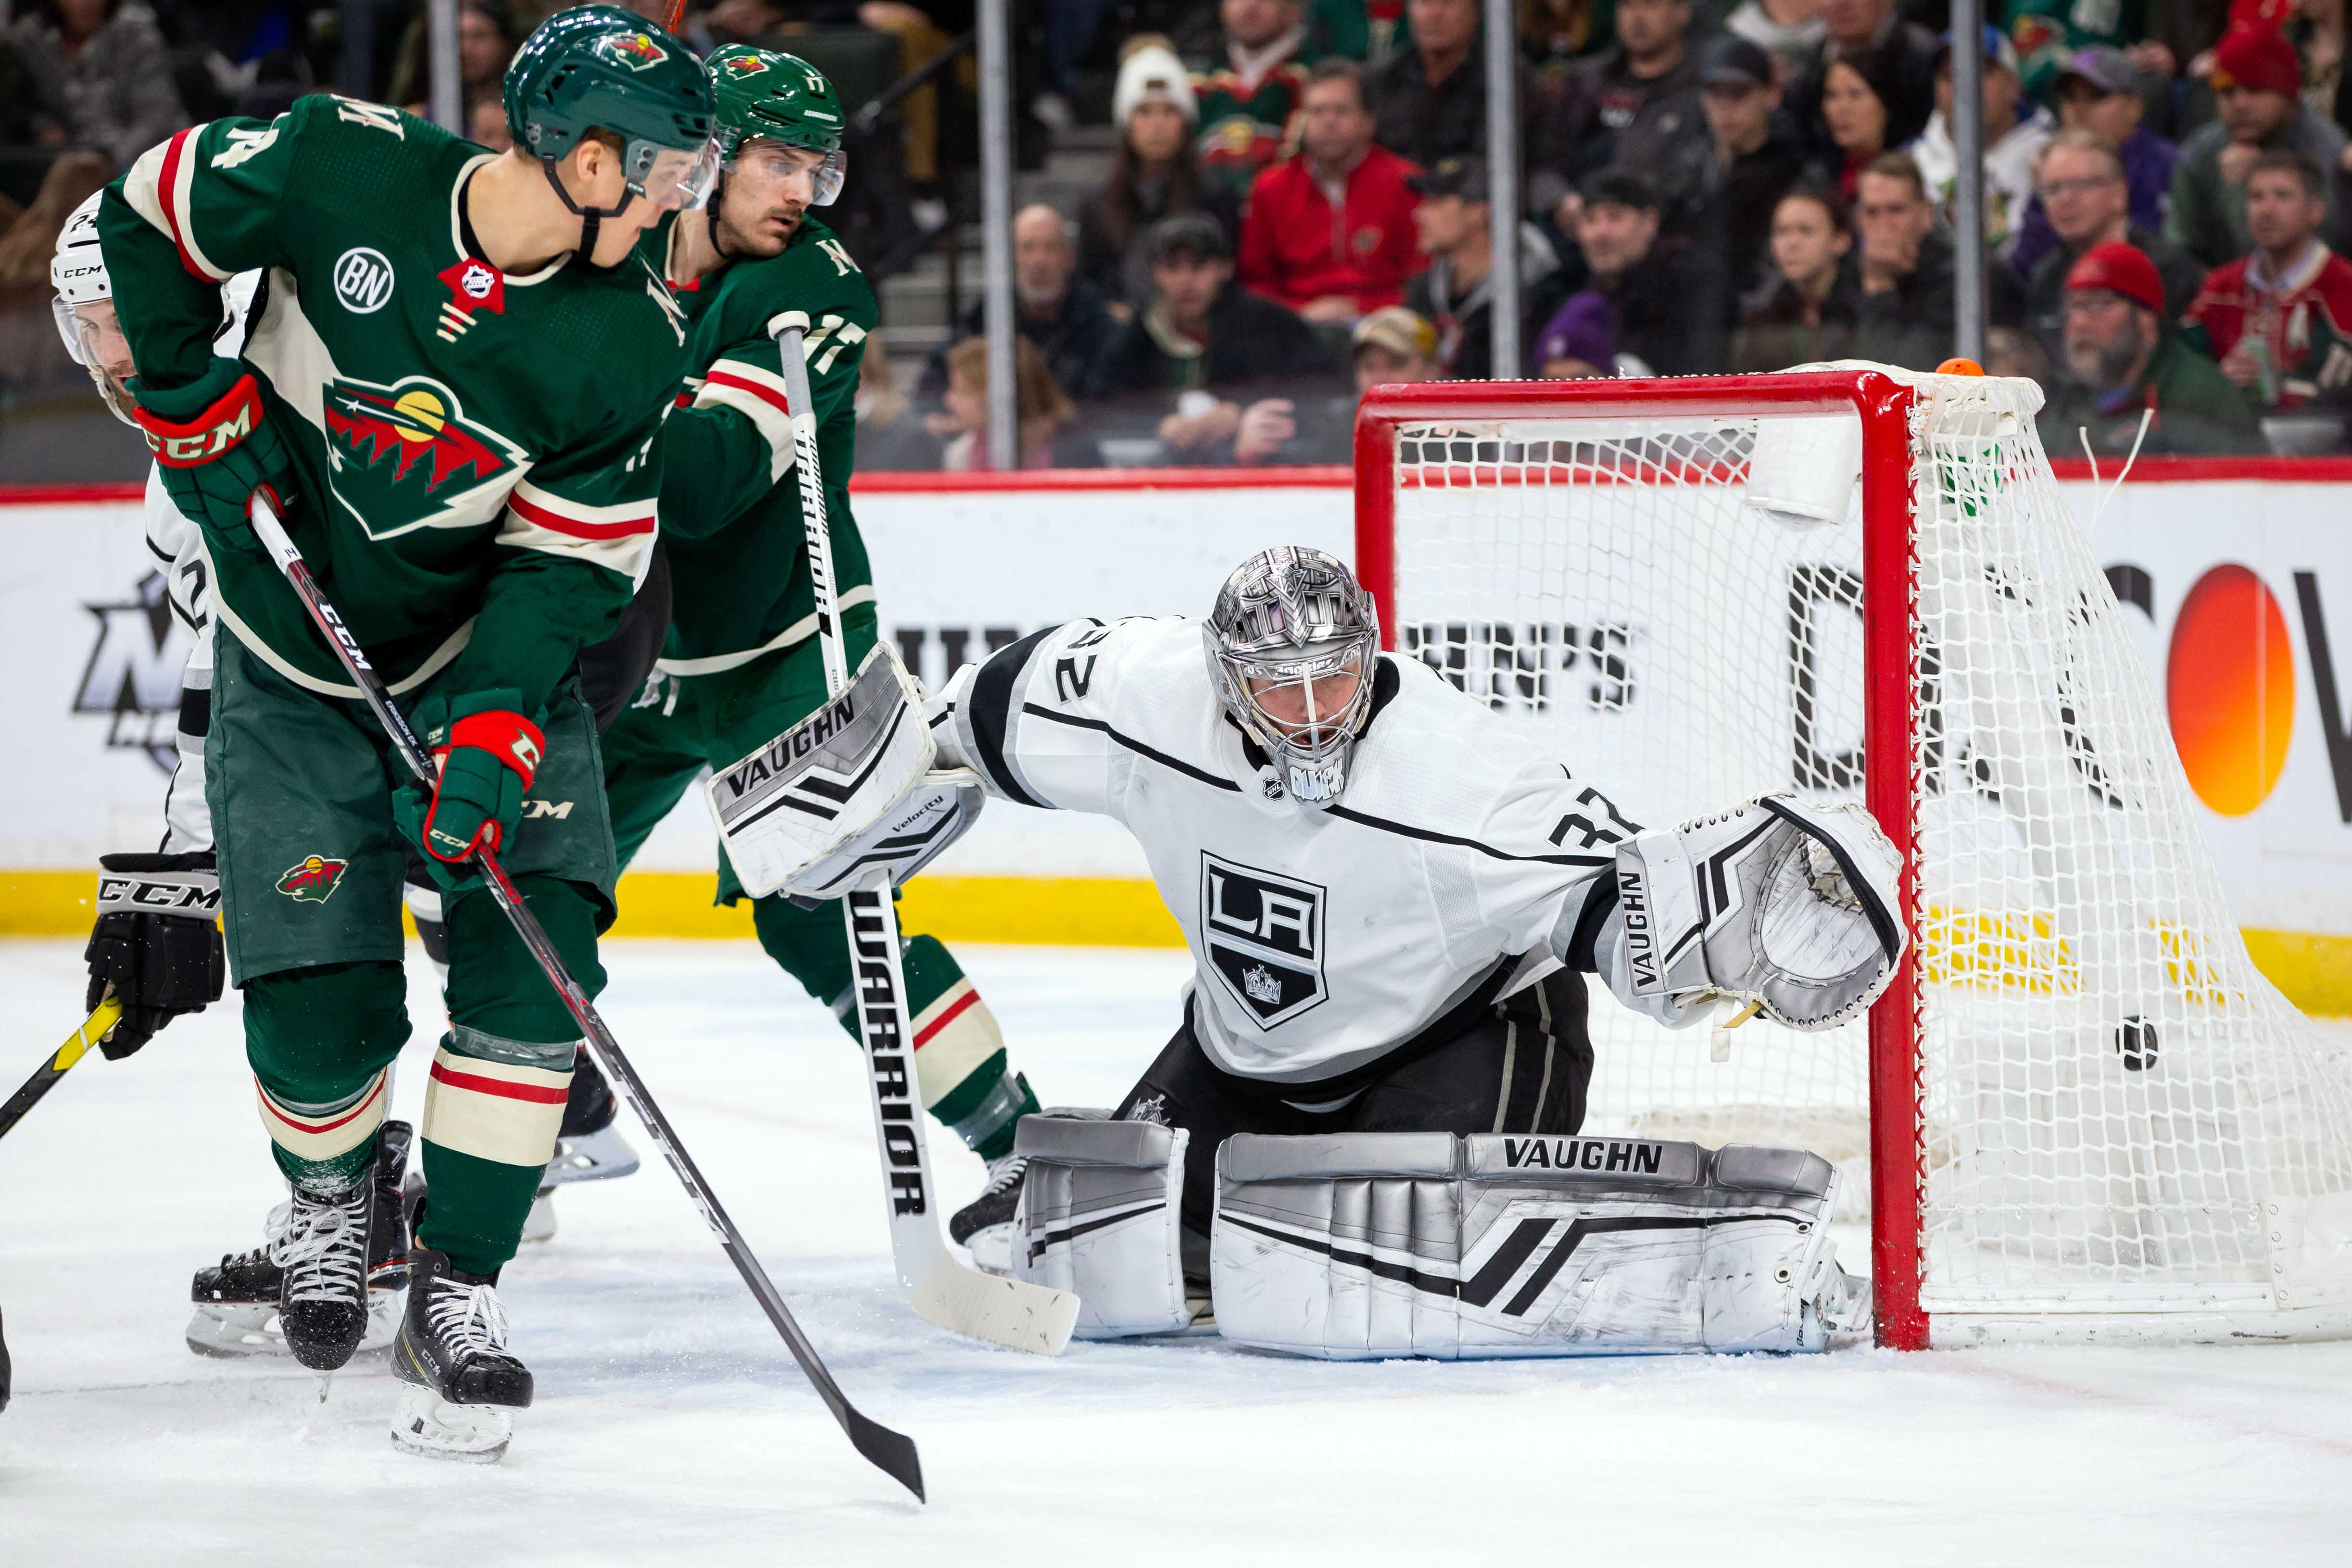 Game Preview: Minnesota Wild vs. Los Angeles Kings 10/26/19 @ 7:00PM CST at Xcel Energy Center